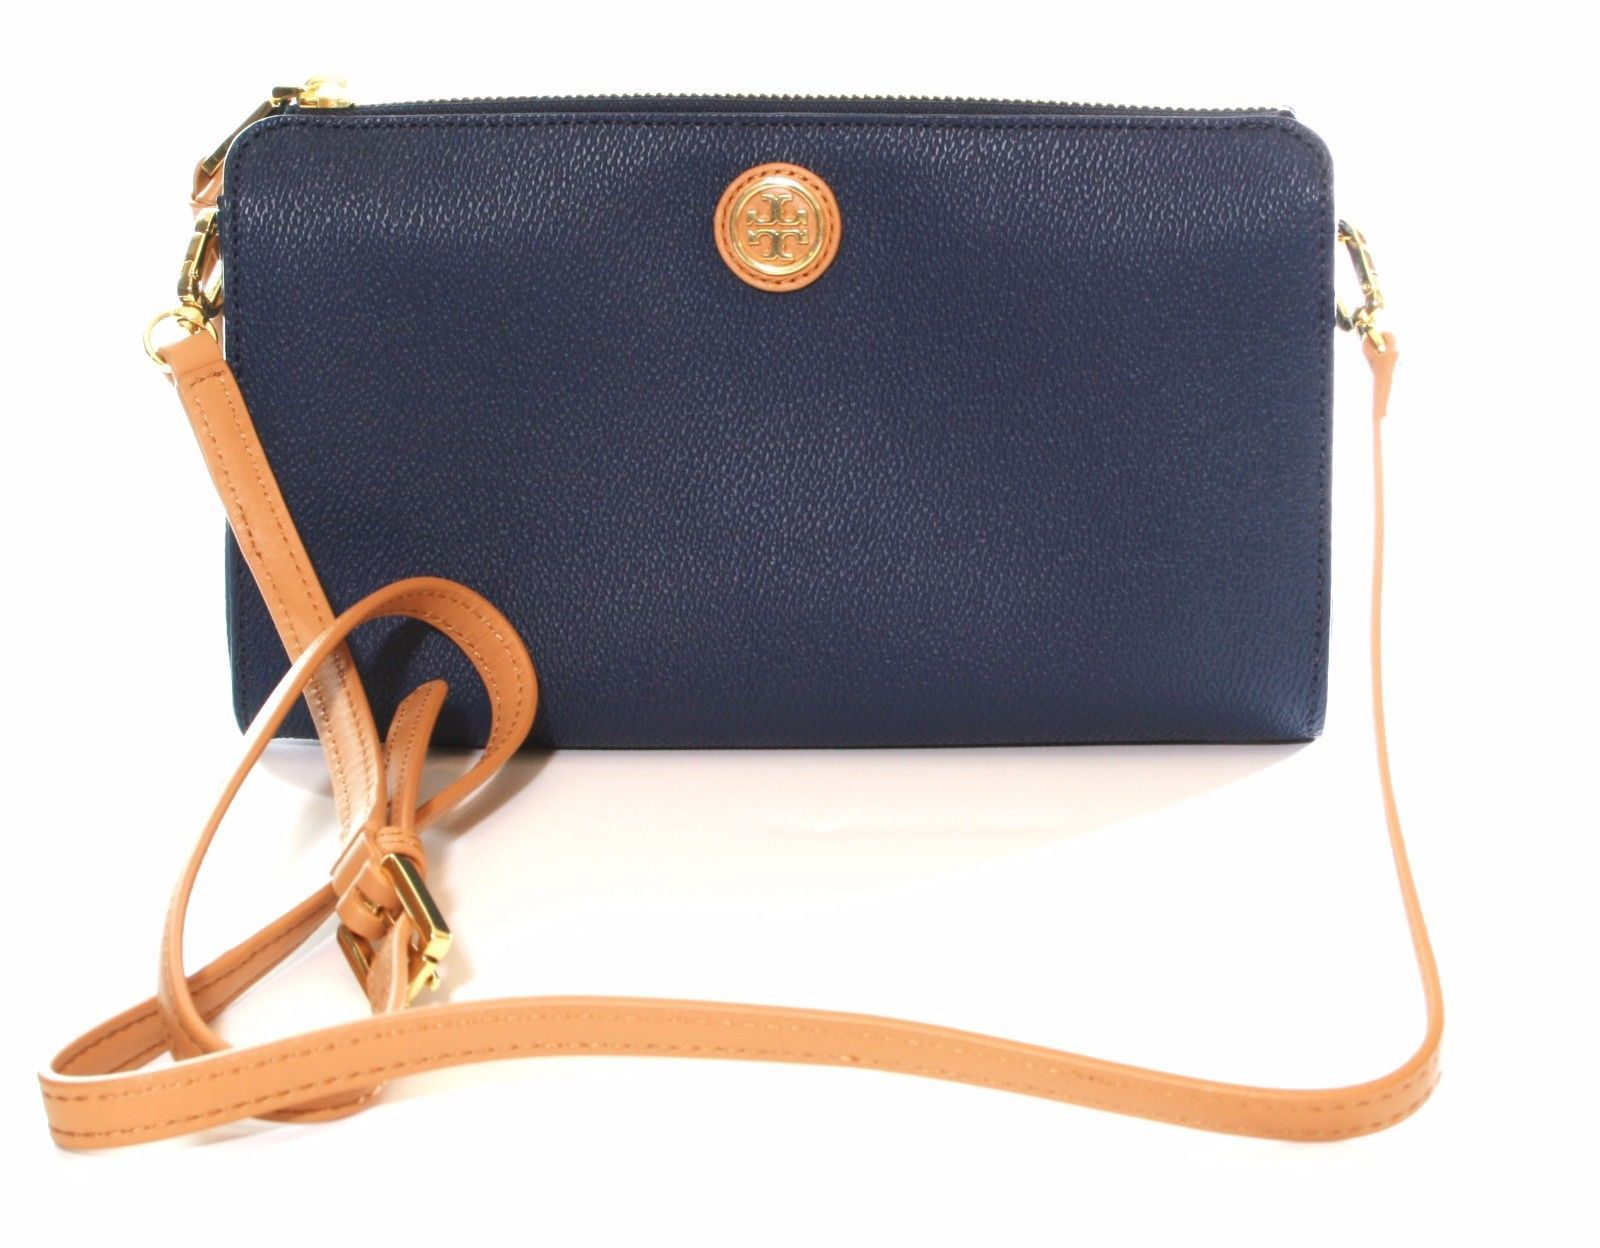 Primary image for Tory Burch Cameron Easy Cross Body Bag Small Handbag Hudson Bay Dark Blue